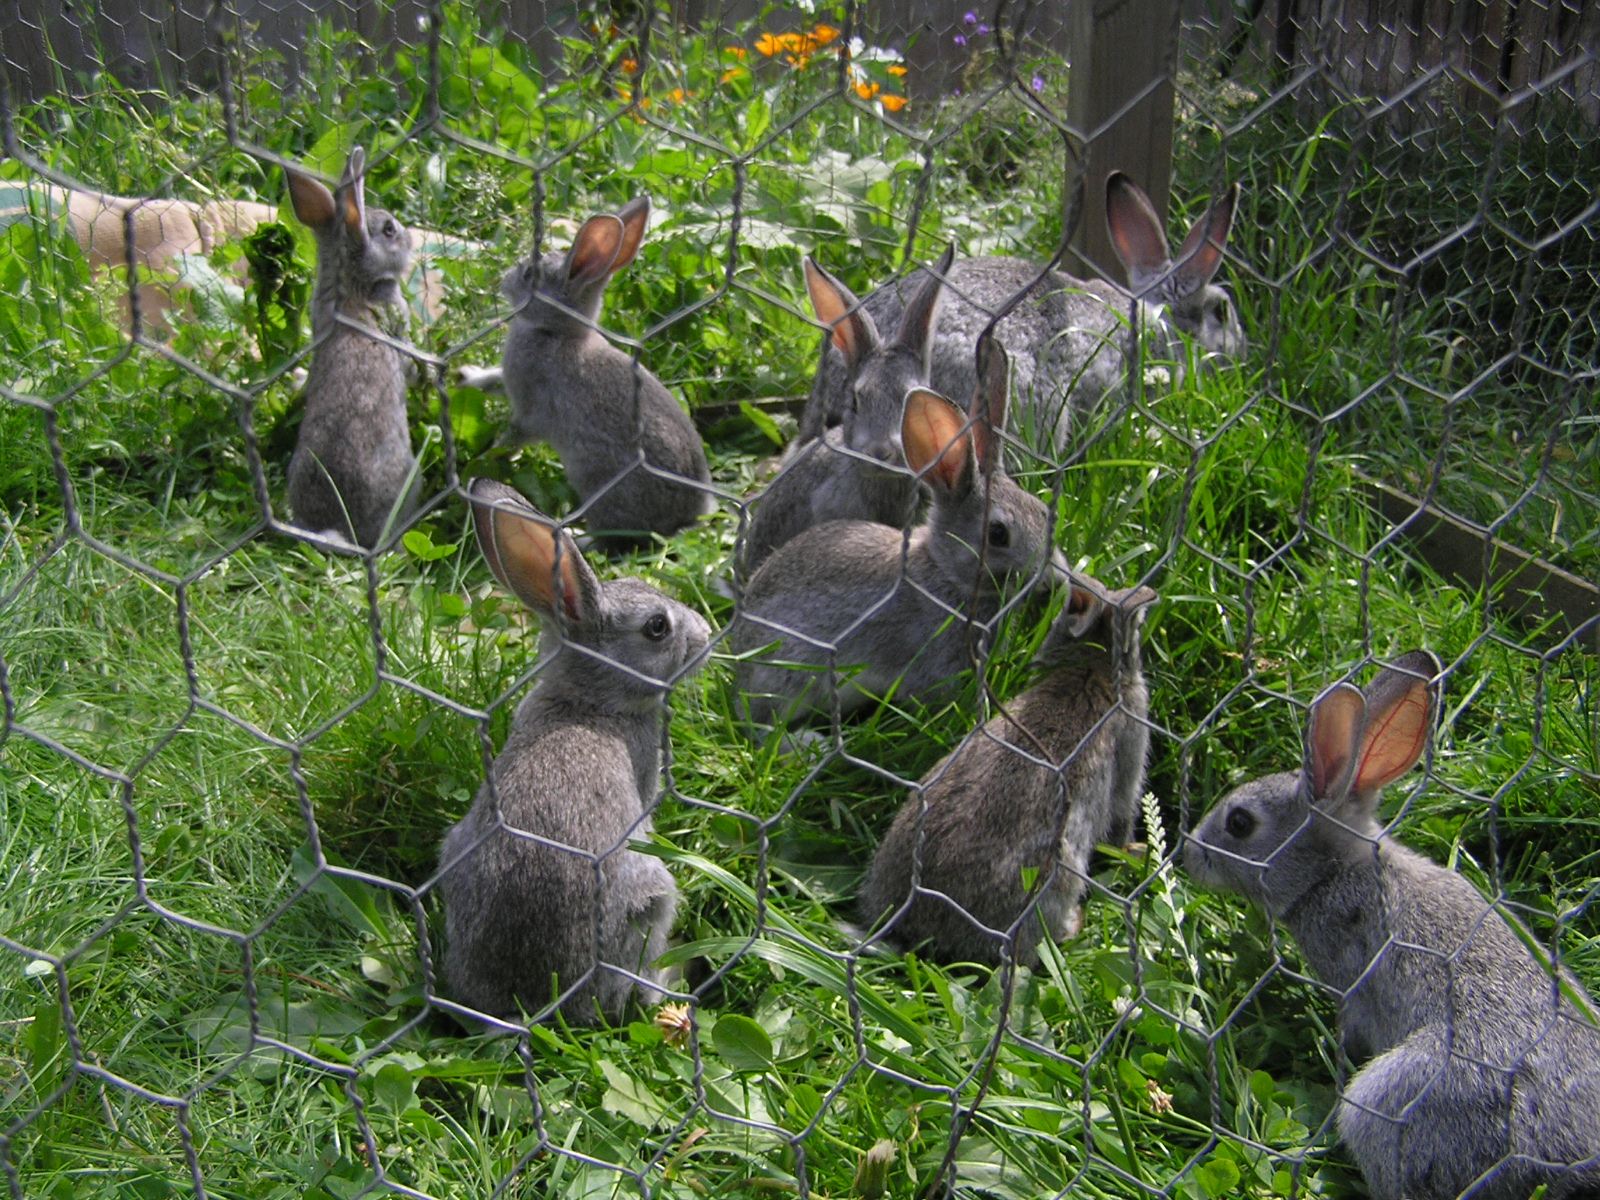 Hens and the garden a tragedy a life unprocessed - How to keep rabbits out of a garden ...